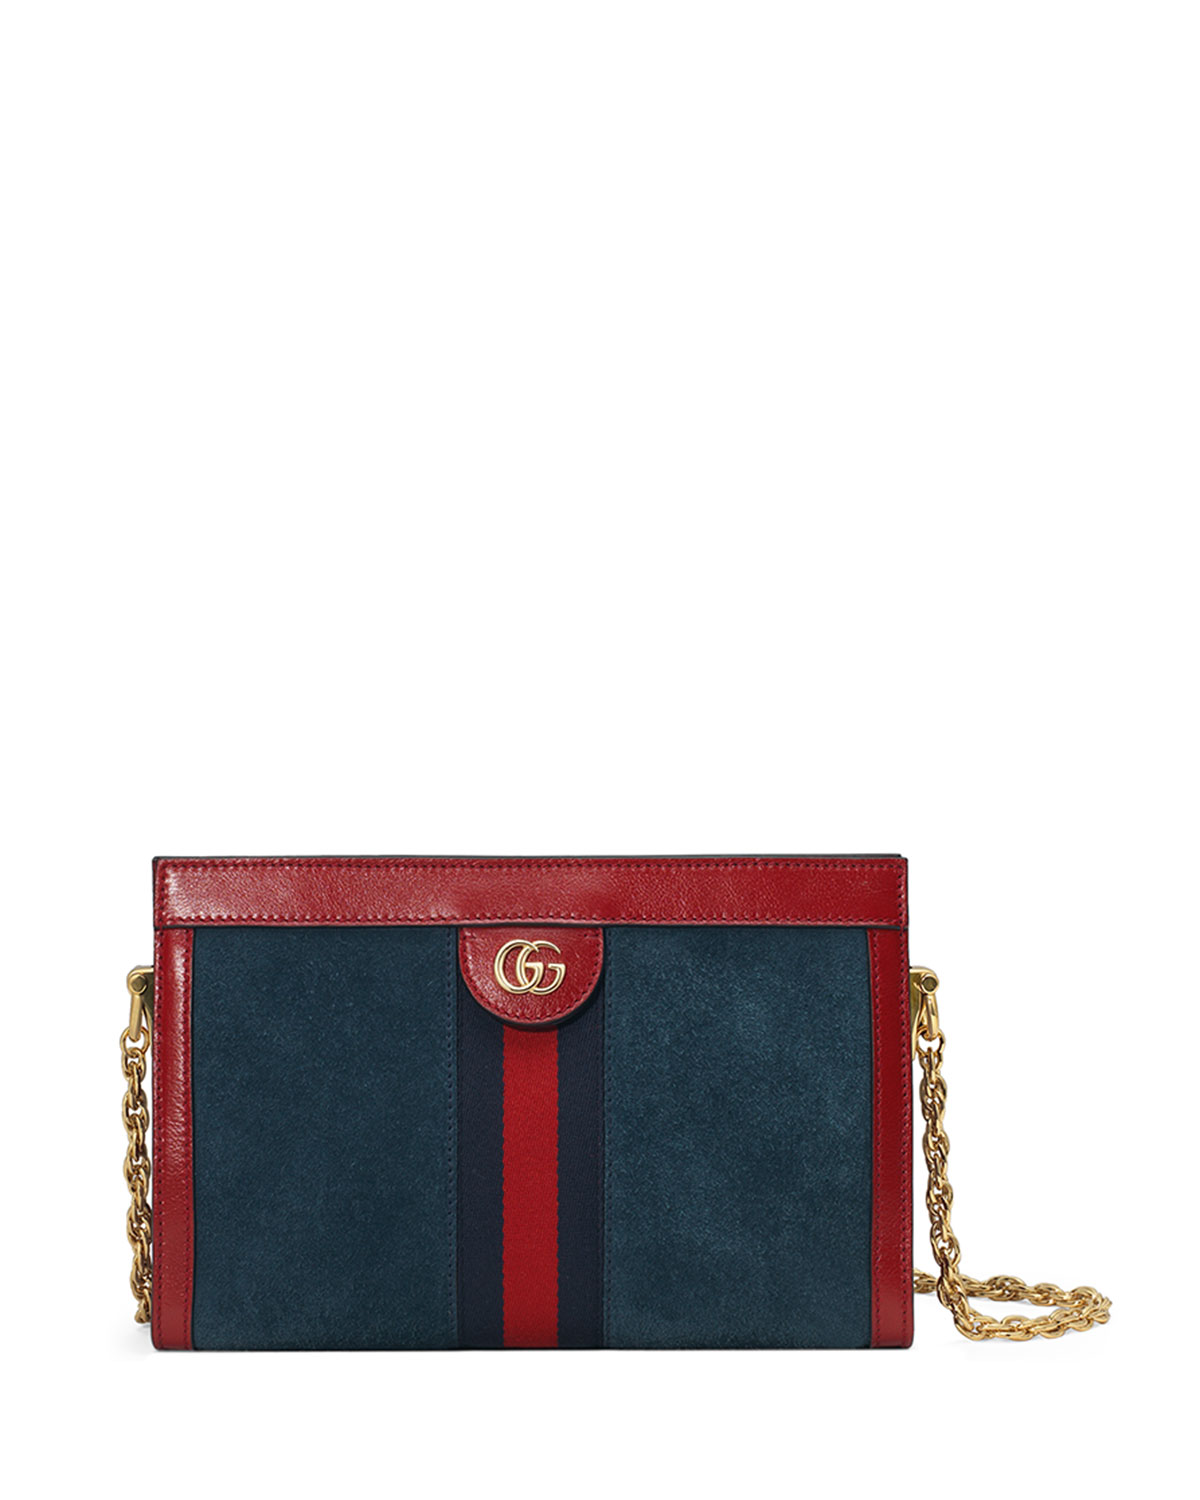 7efb8a1ab29b63 Gucci Ophidia Small Suede Chain Shoulder Bag | Neiman Marcus